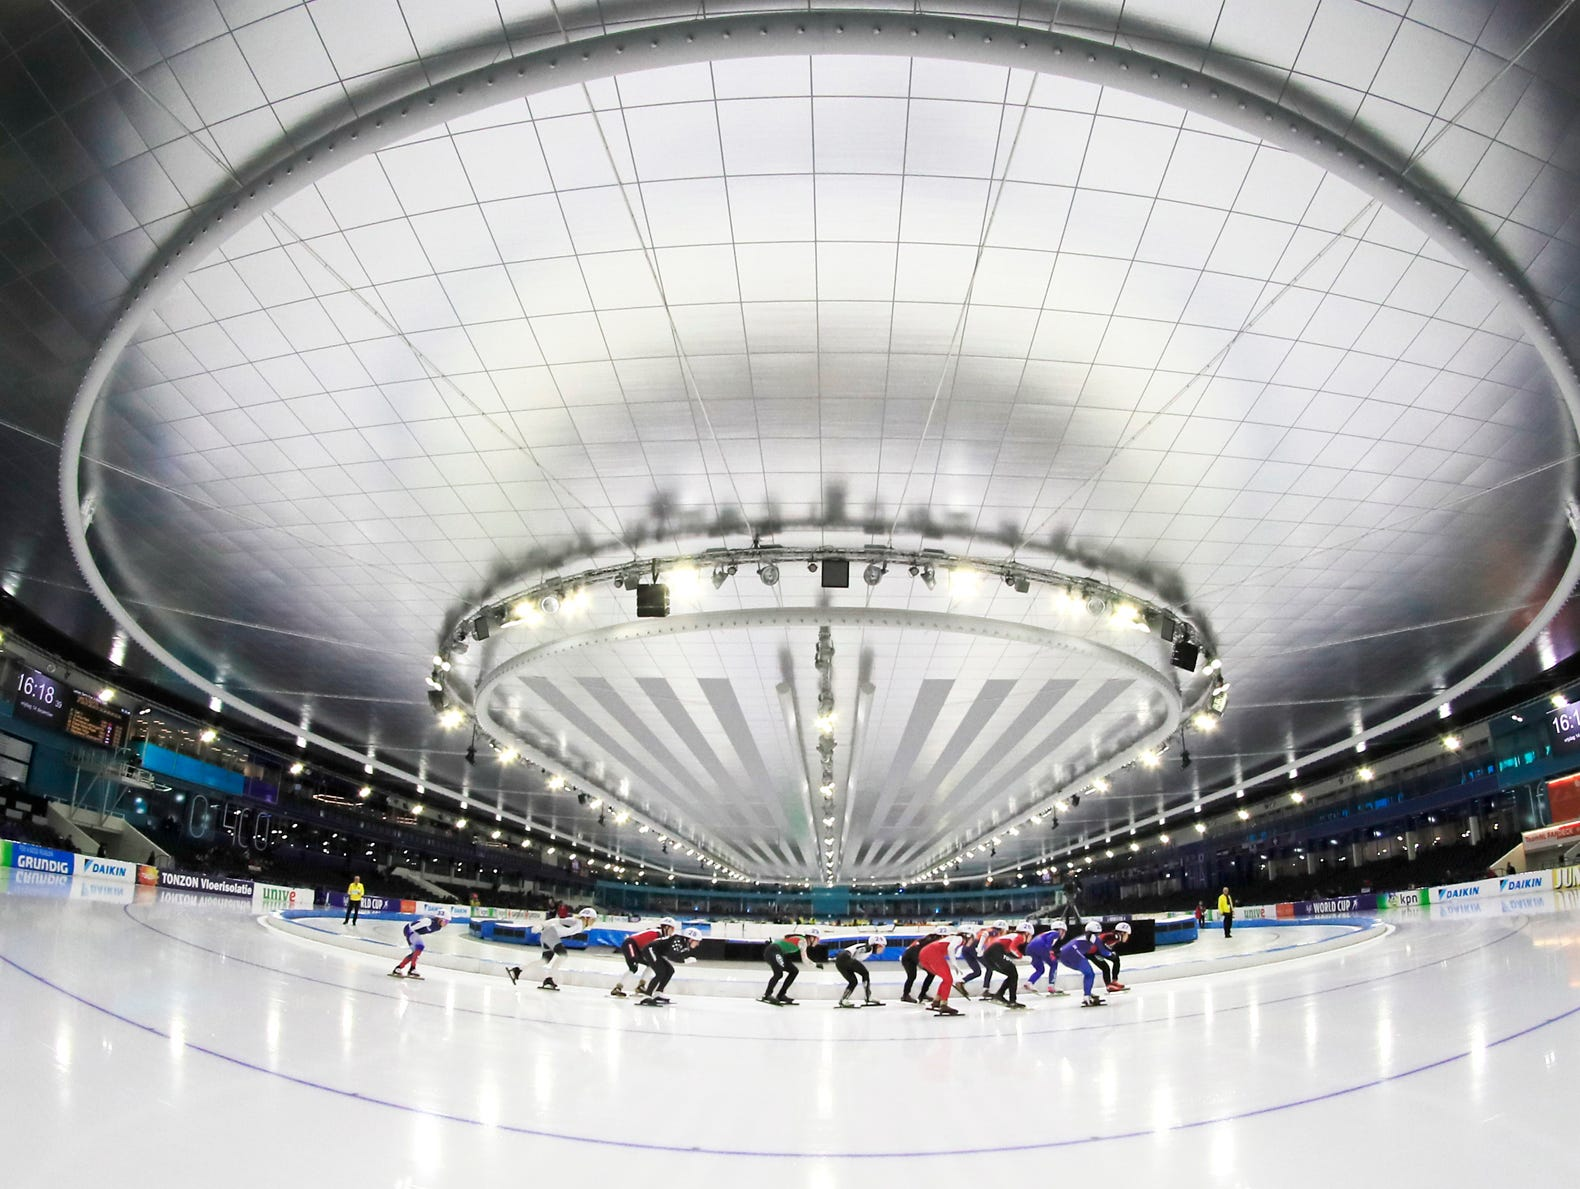 View of the ice arena during the women's semi final mass start event of the World Cup speed skating at the Thialf ice arena in Heerenveen, Netherlands, Friday, Dec.14, 2018. (AP Photo/Peter Dejong)